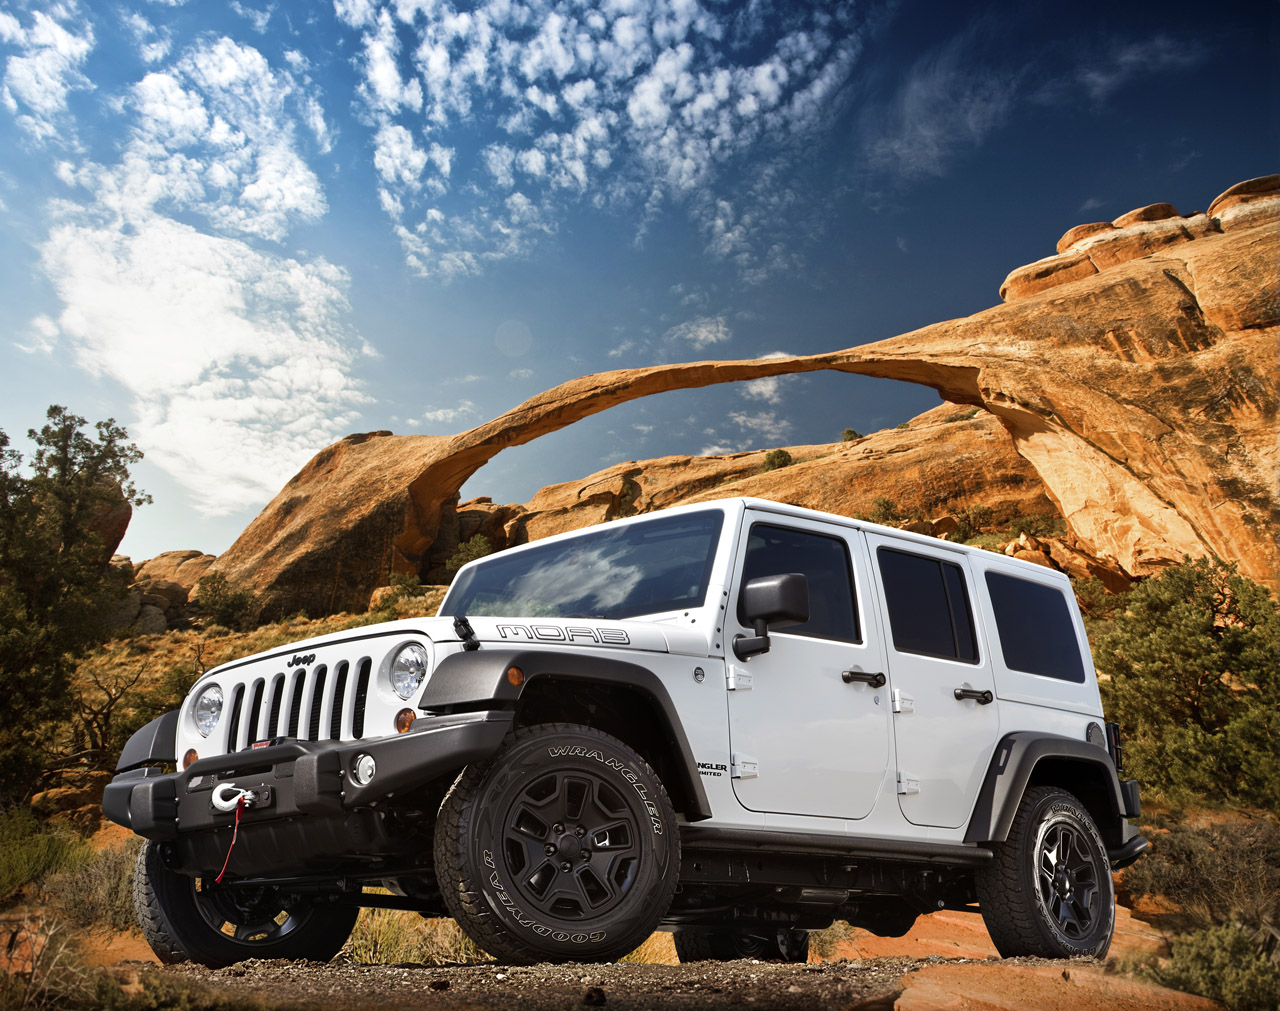 2018 Jeep Grand Cherokee Trailhawk >> Jeep Wrangler Moab Special Edition Unveiled - autoevolution